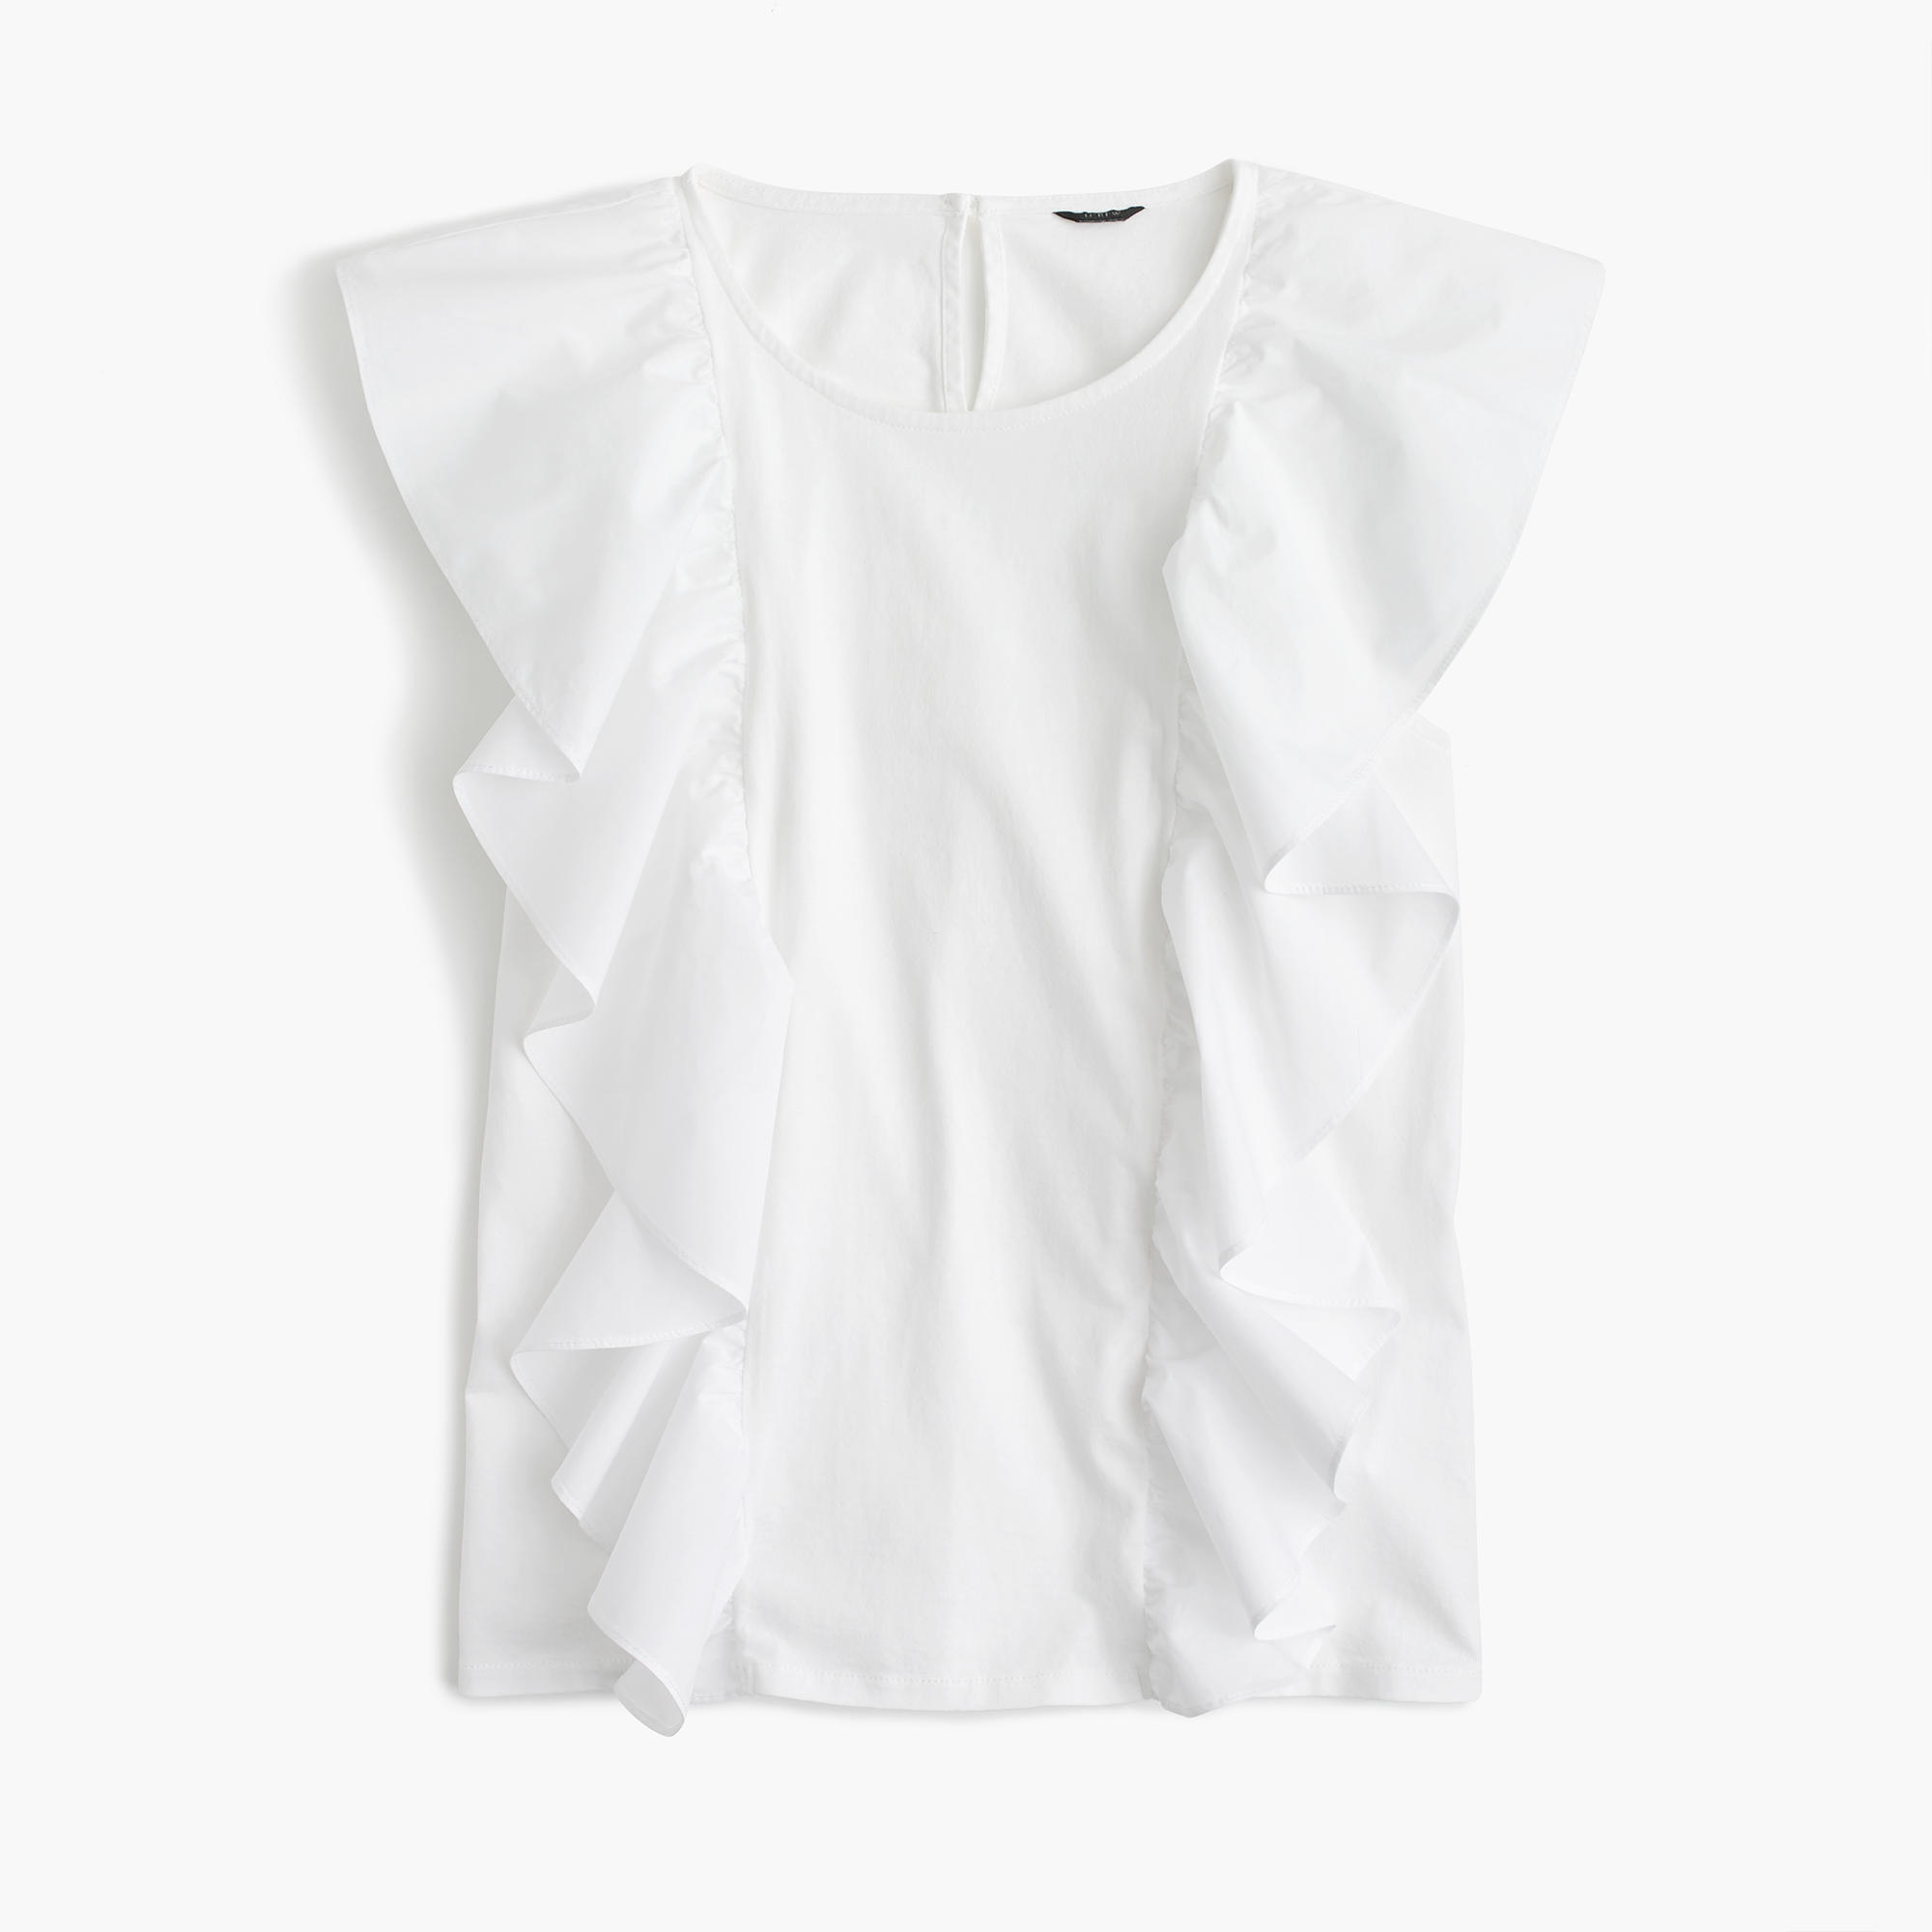 Ruffle-front top